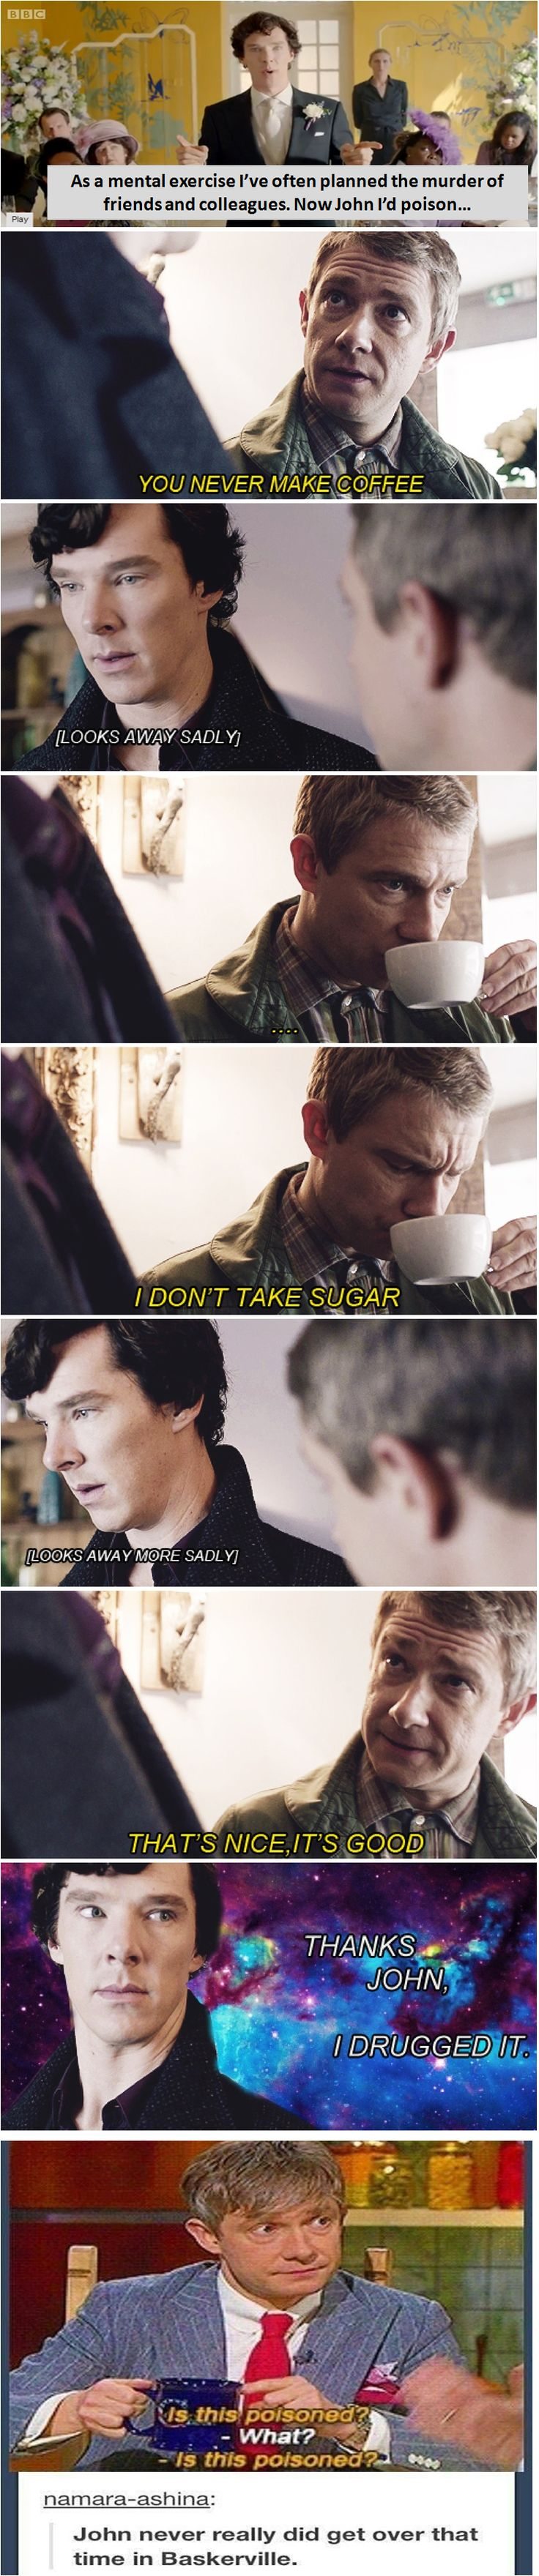 THE LOOK ON SHERLOCKS FACE WITH THE FUCKING UNIVERSE IN THE BACKGROUND! IT'S TOO MUCH!